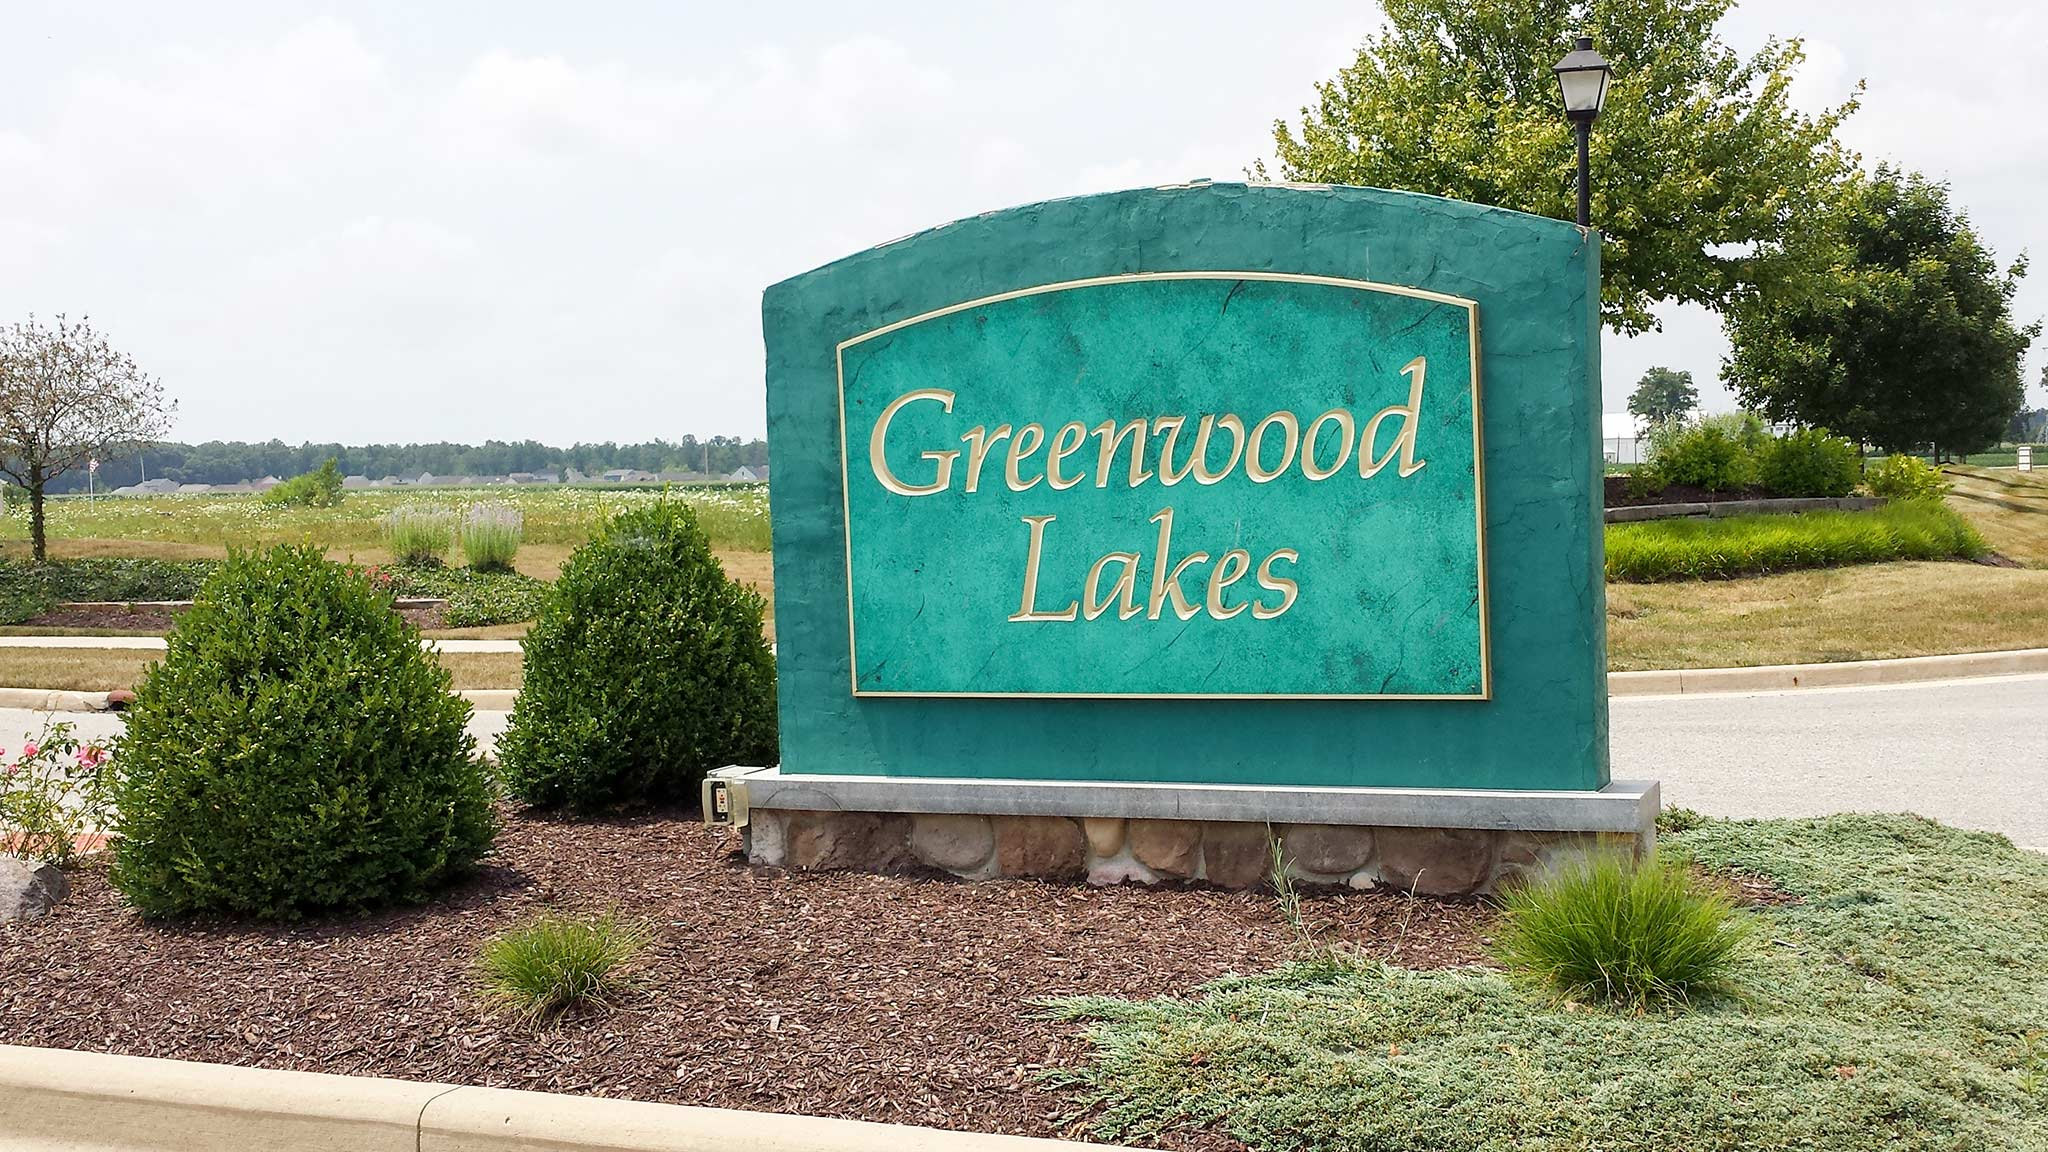 Greenwood Lakes